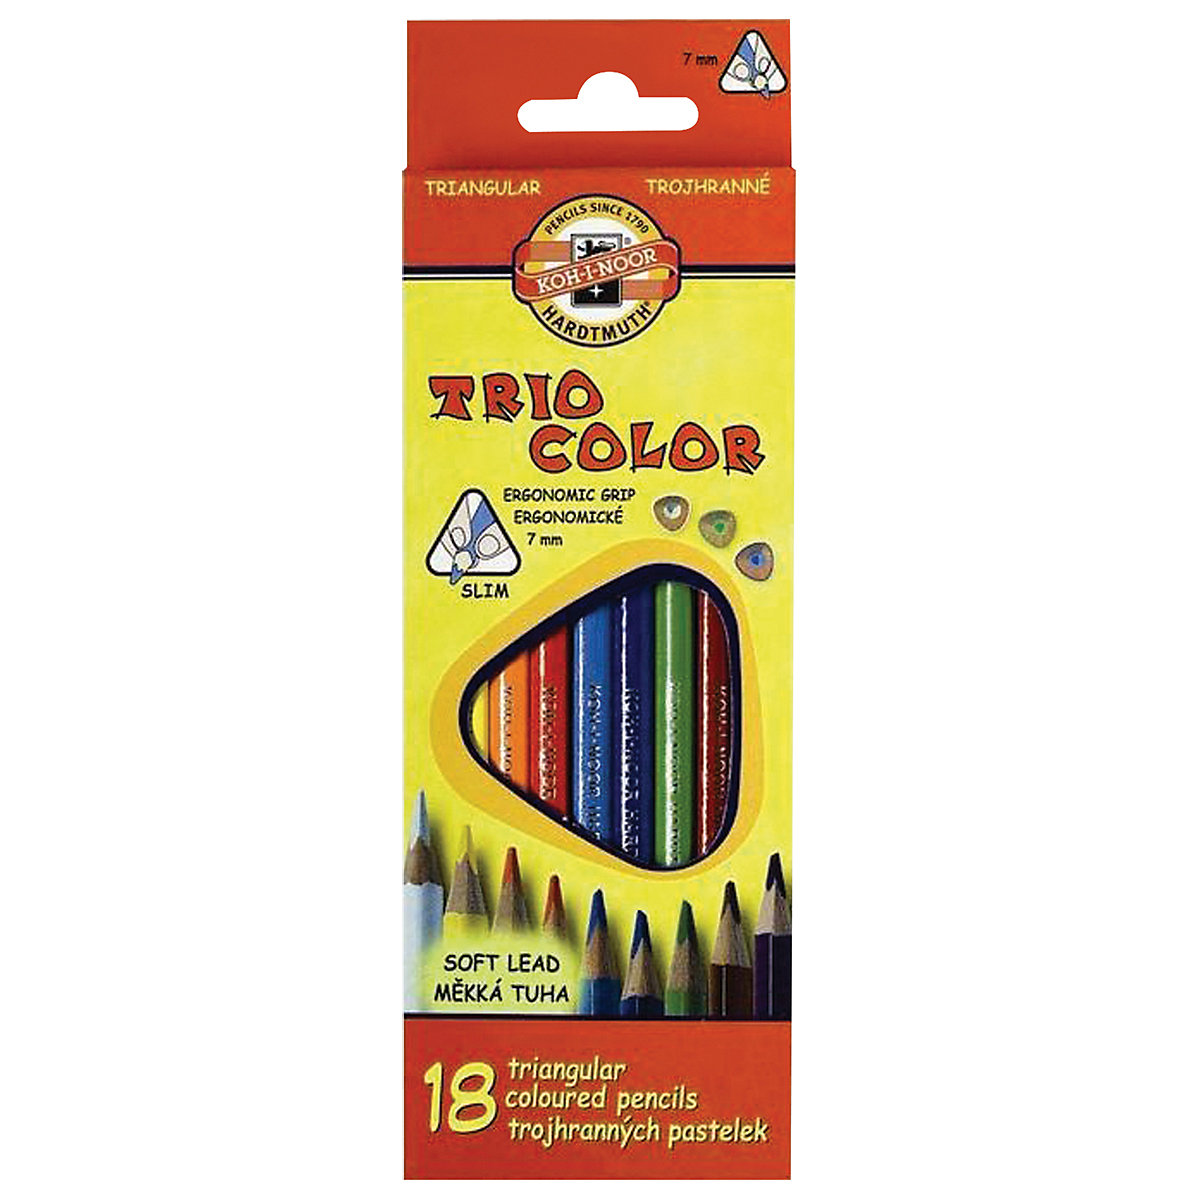 KOH-I-NOOR Wooden Colored Pencils 4792674 colored pencil for boys and girls children sets MTpromo